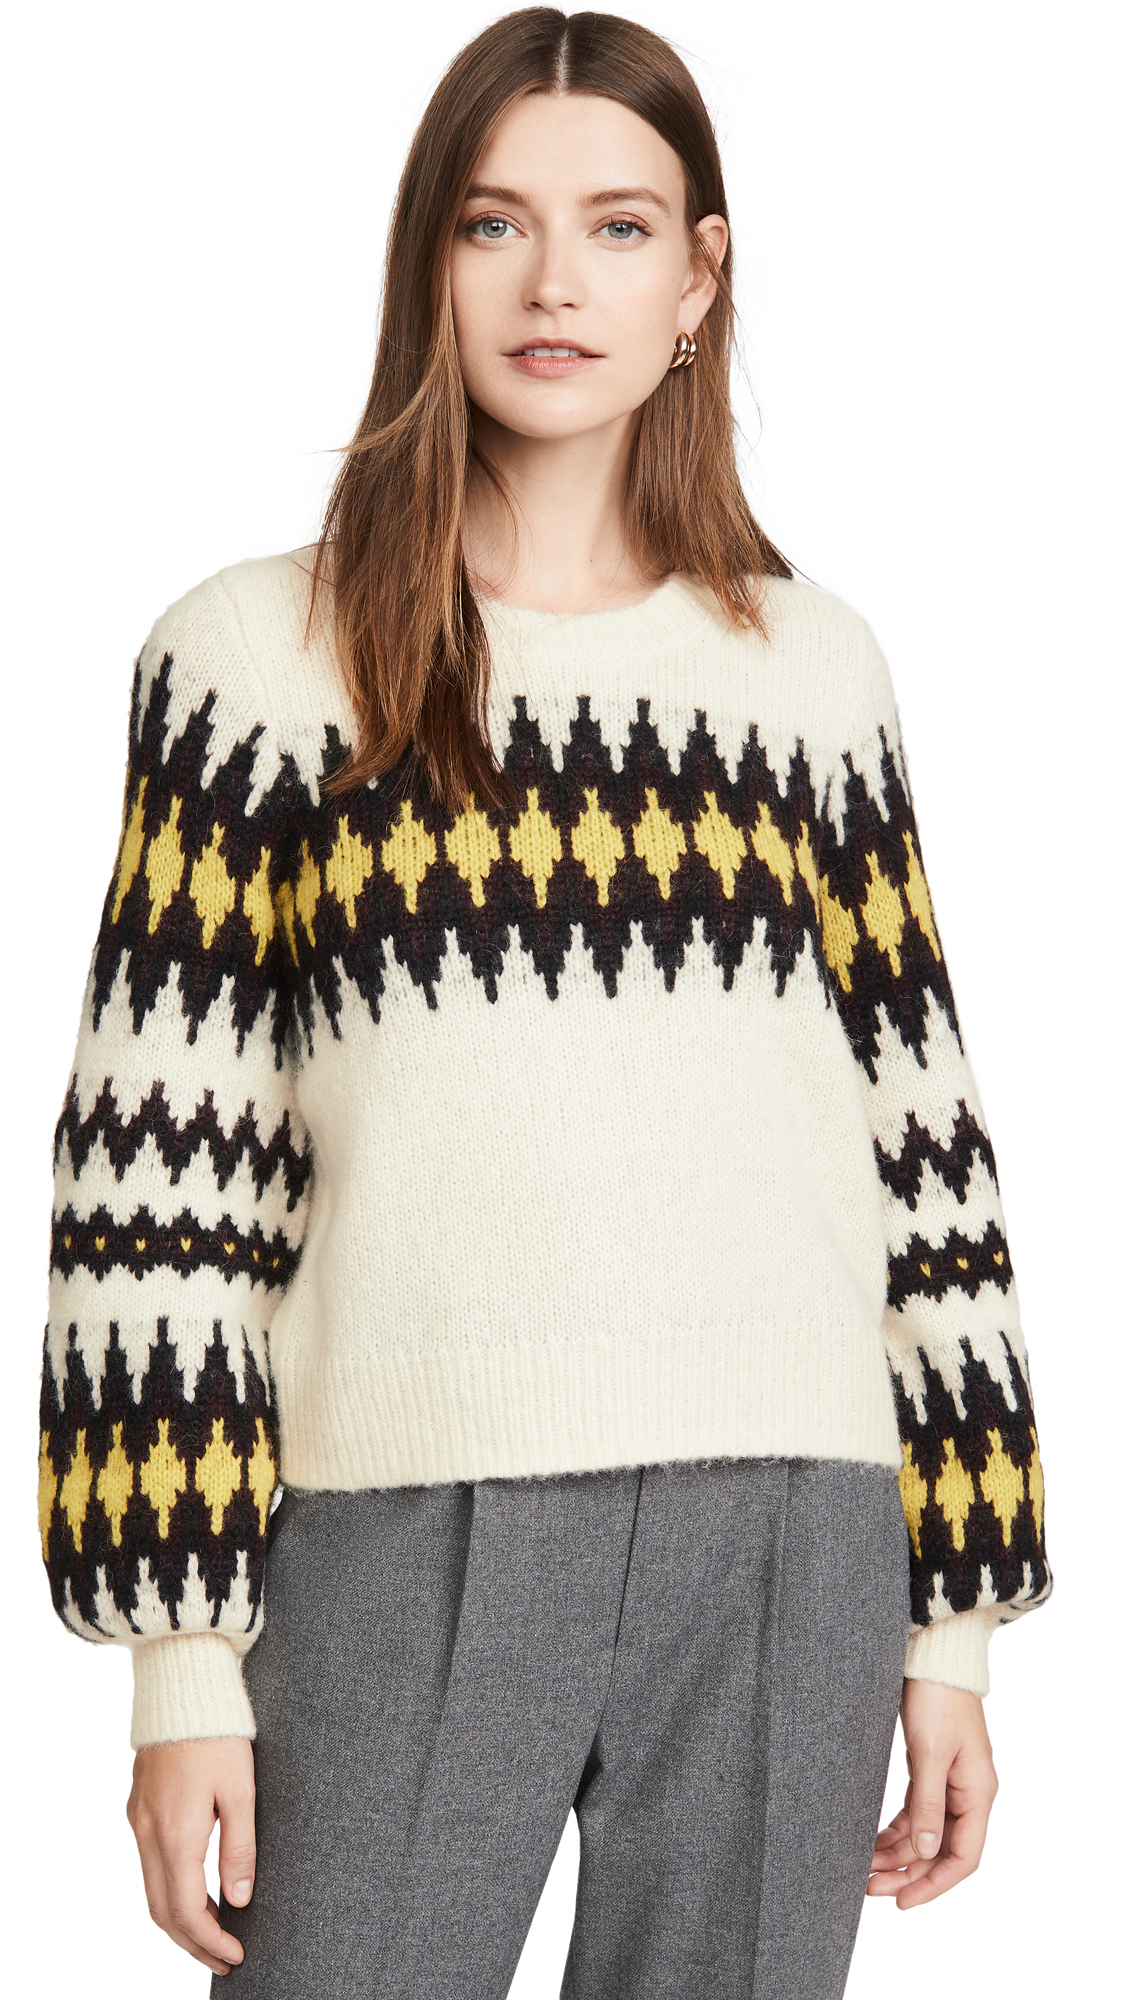 A.L.C. Badgley Sweater - 70% Off Sale